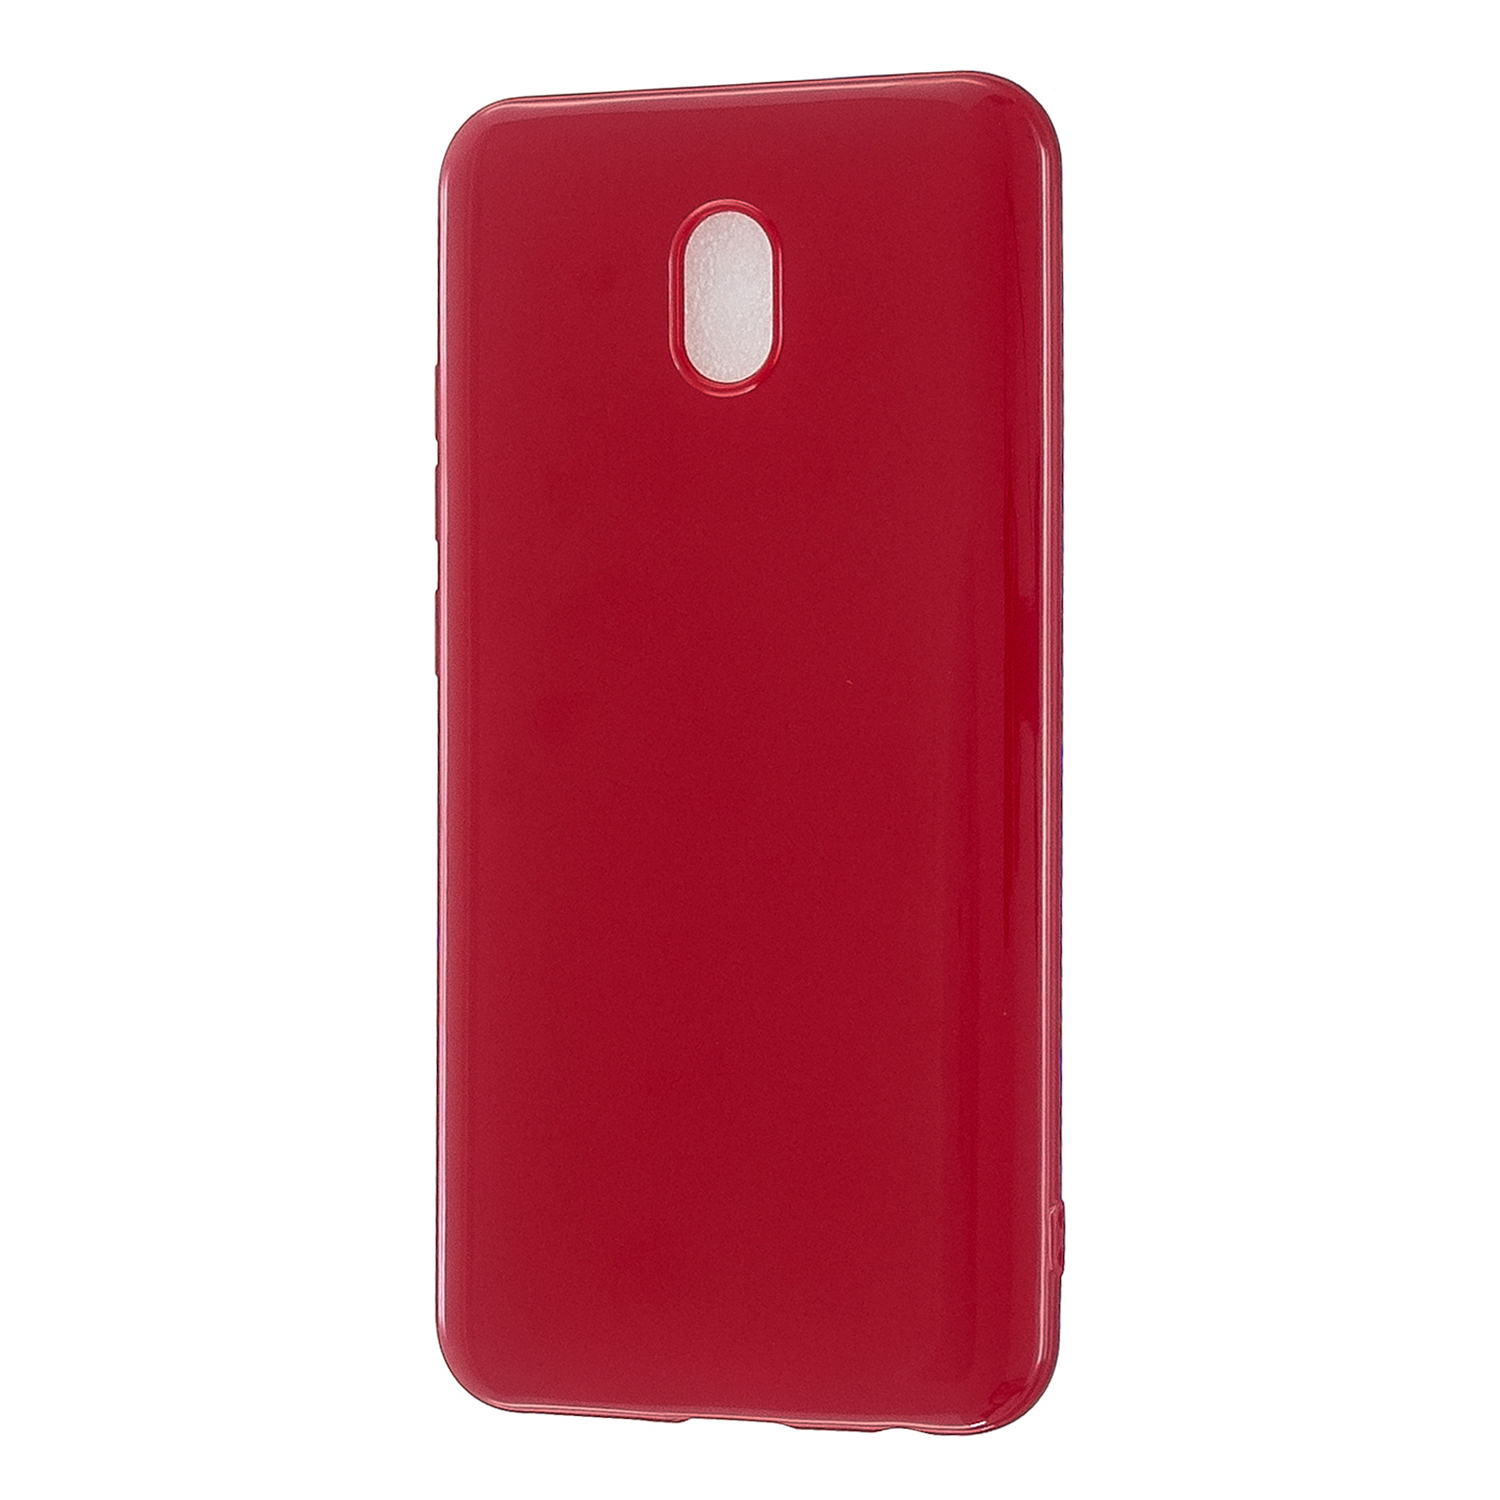 For Redmi 8 / Redmi 8A Cellphone Cover Glossy TPU Phone Case Defender Full Body Protection Smartphone Shell Rose red